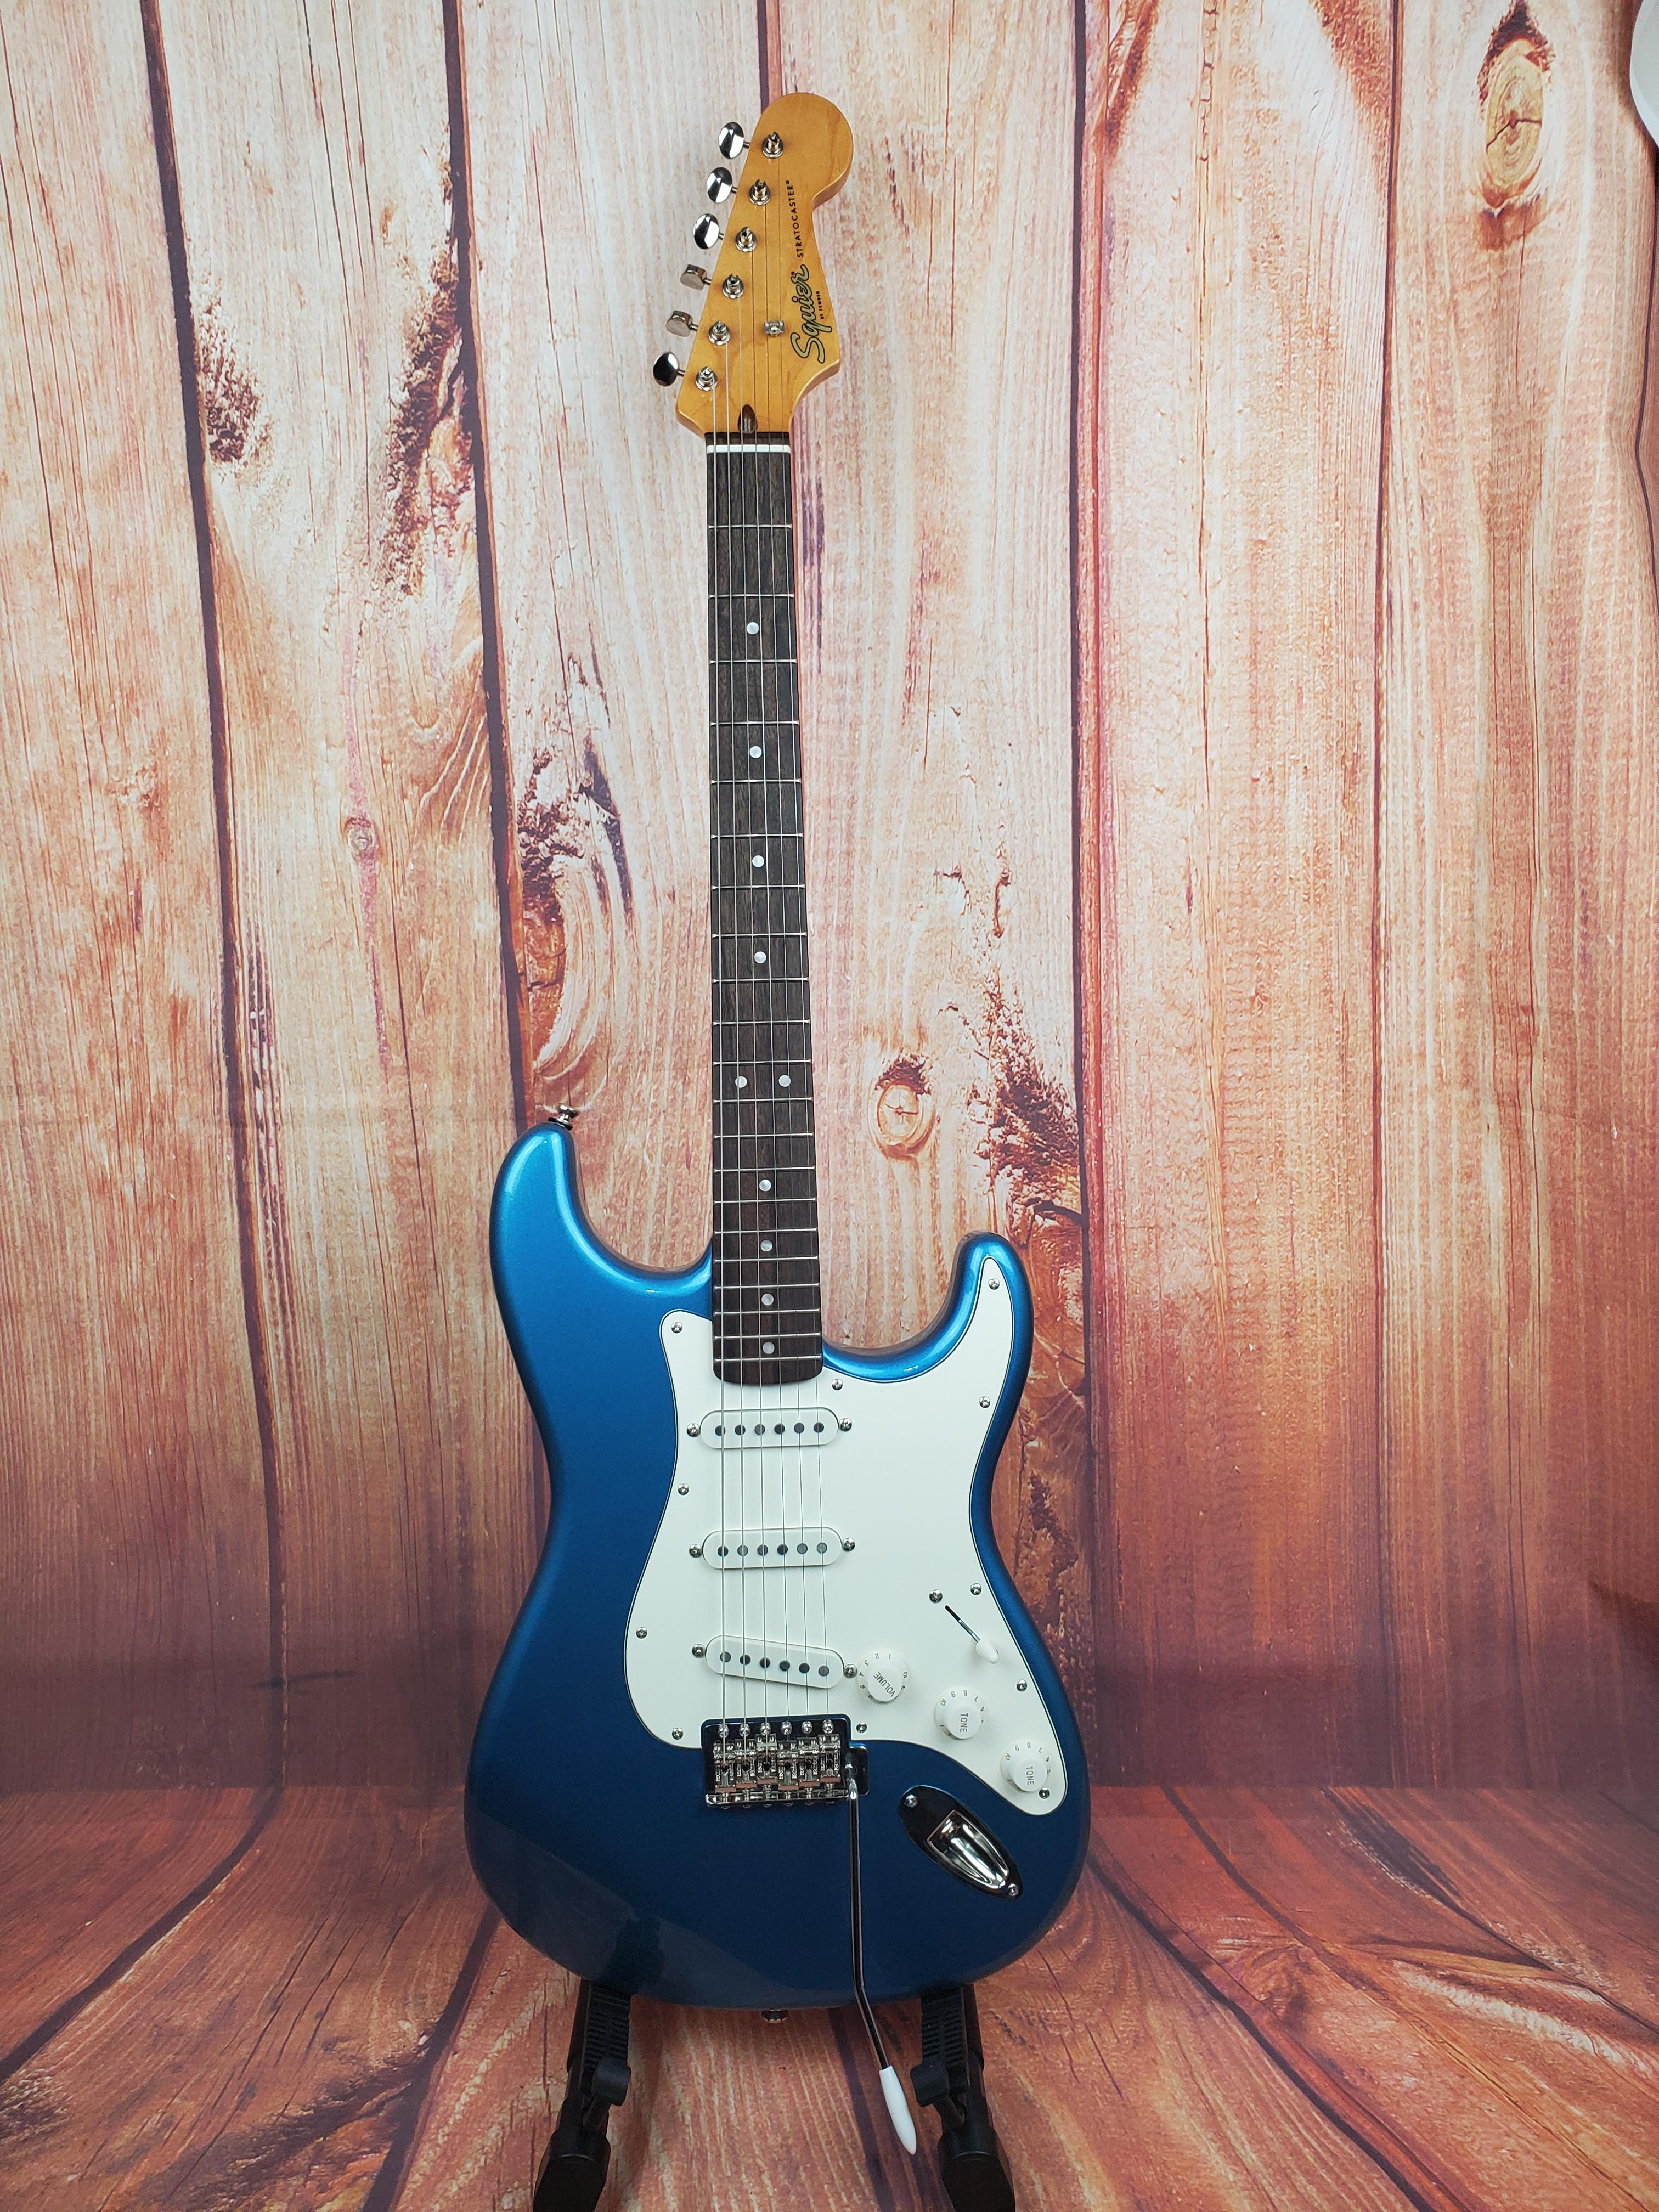 Used-Squier Classic Vibe '60s Stratocaster-Lake Placid Blue